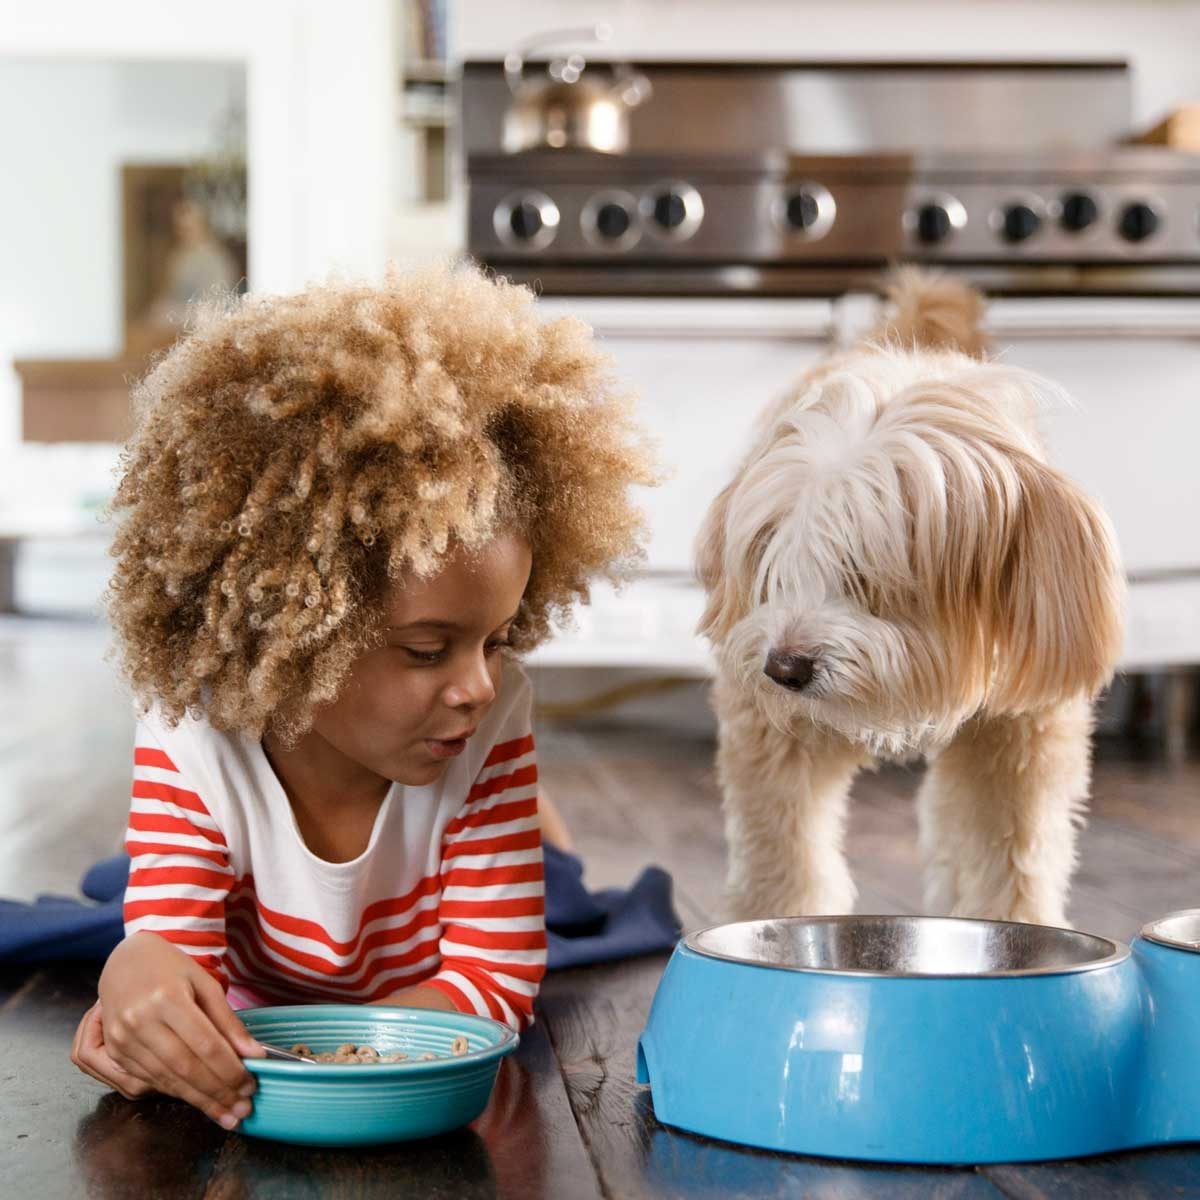 Little girl eating with a dog